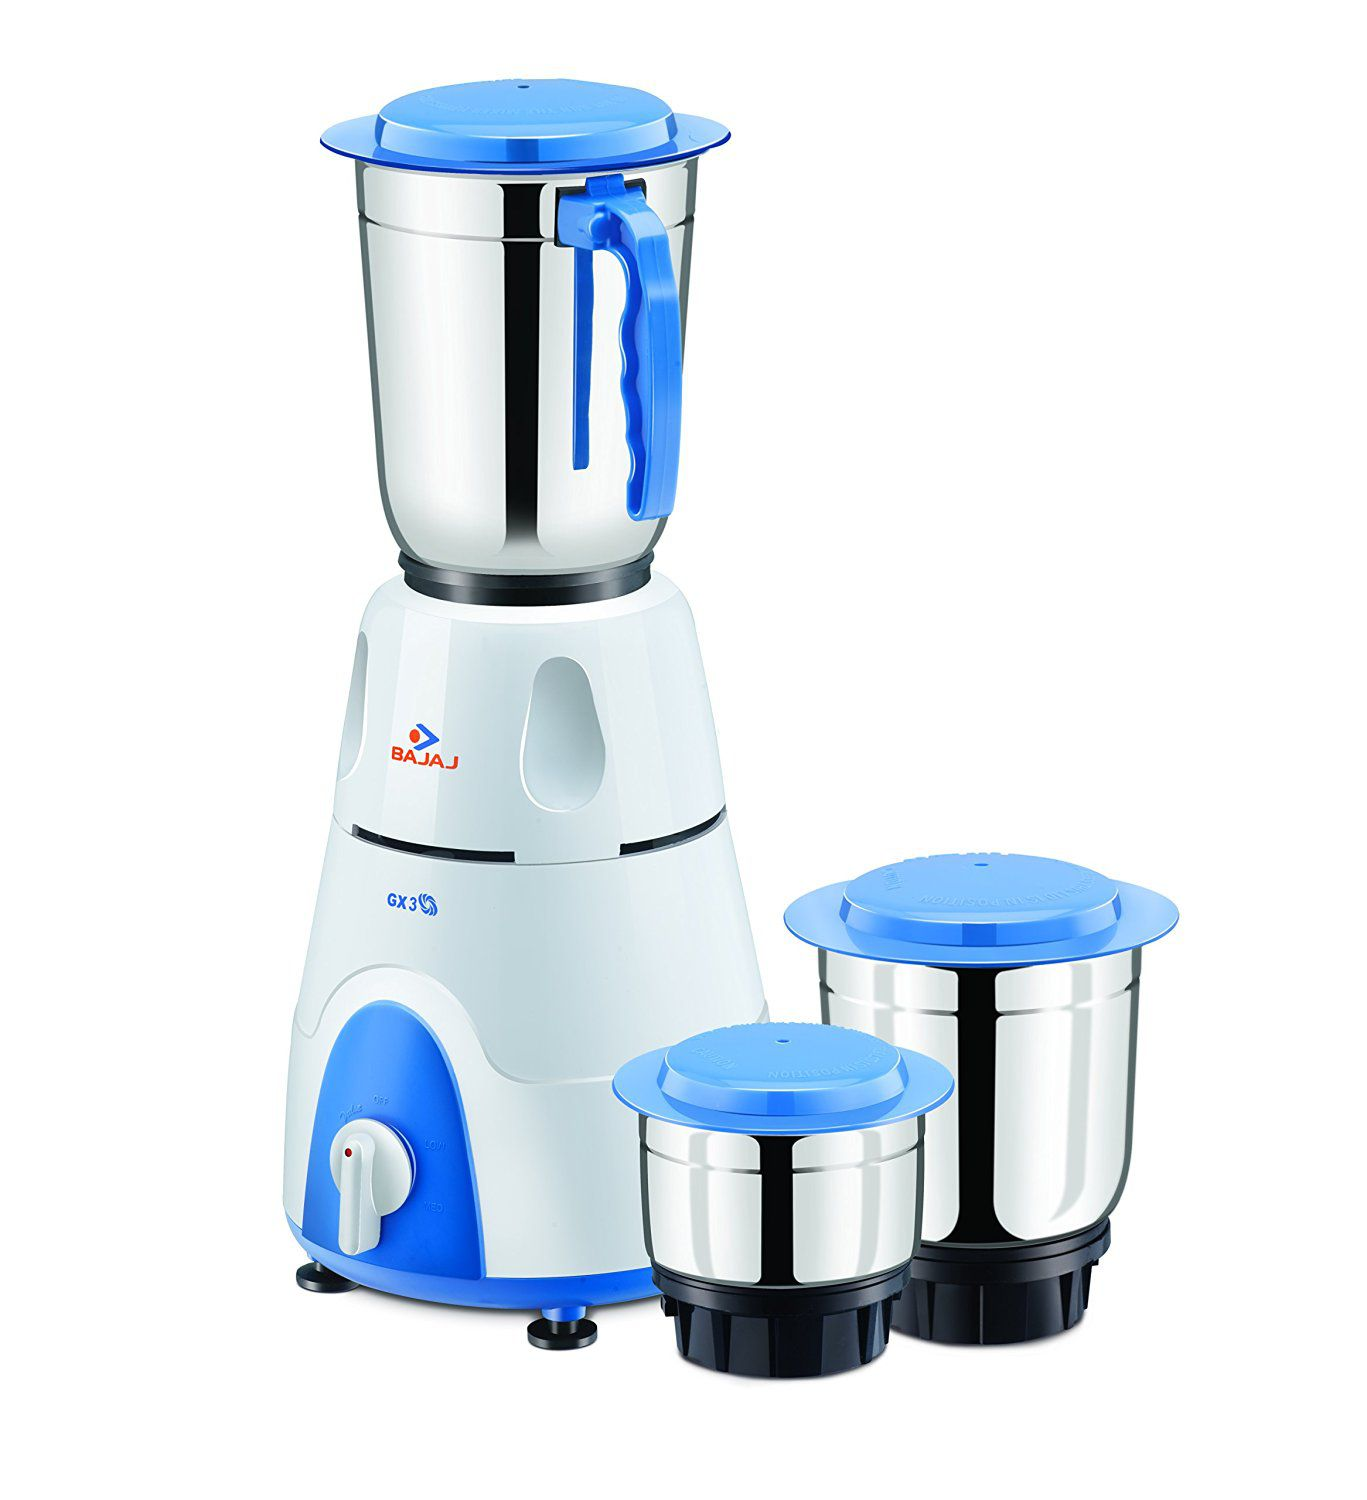 Bajaj GX3 Mixer Grinder Price in India Buy Bajaj GX3 Mixer